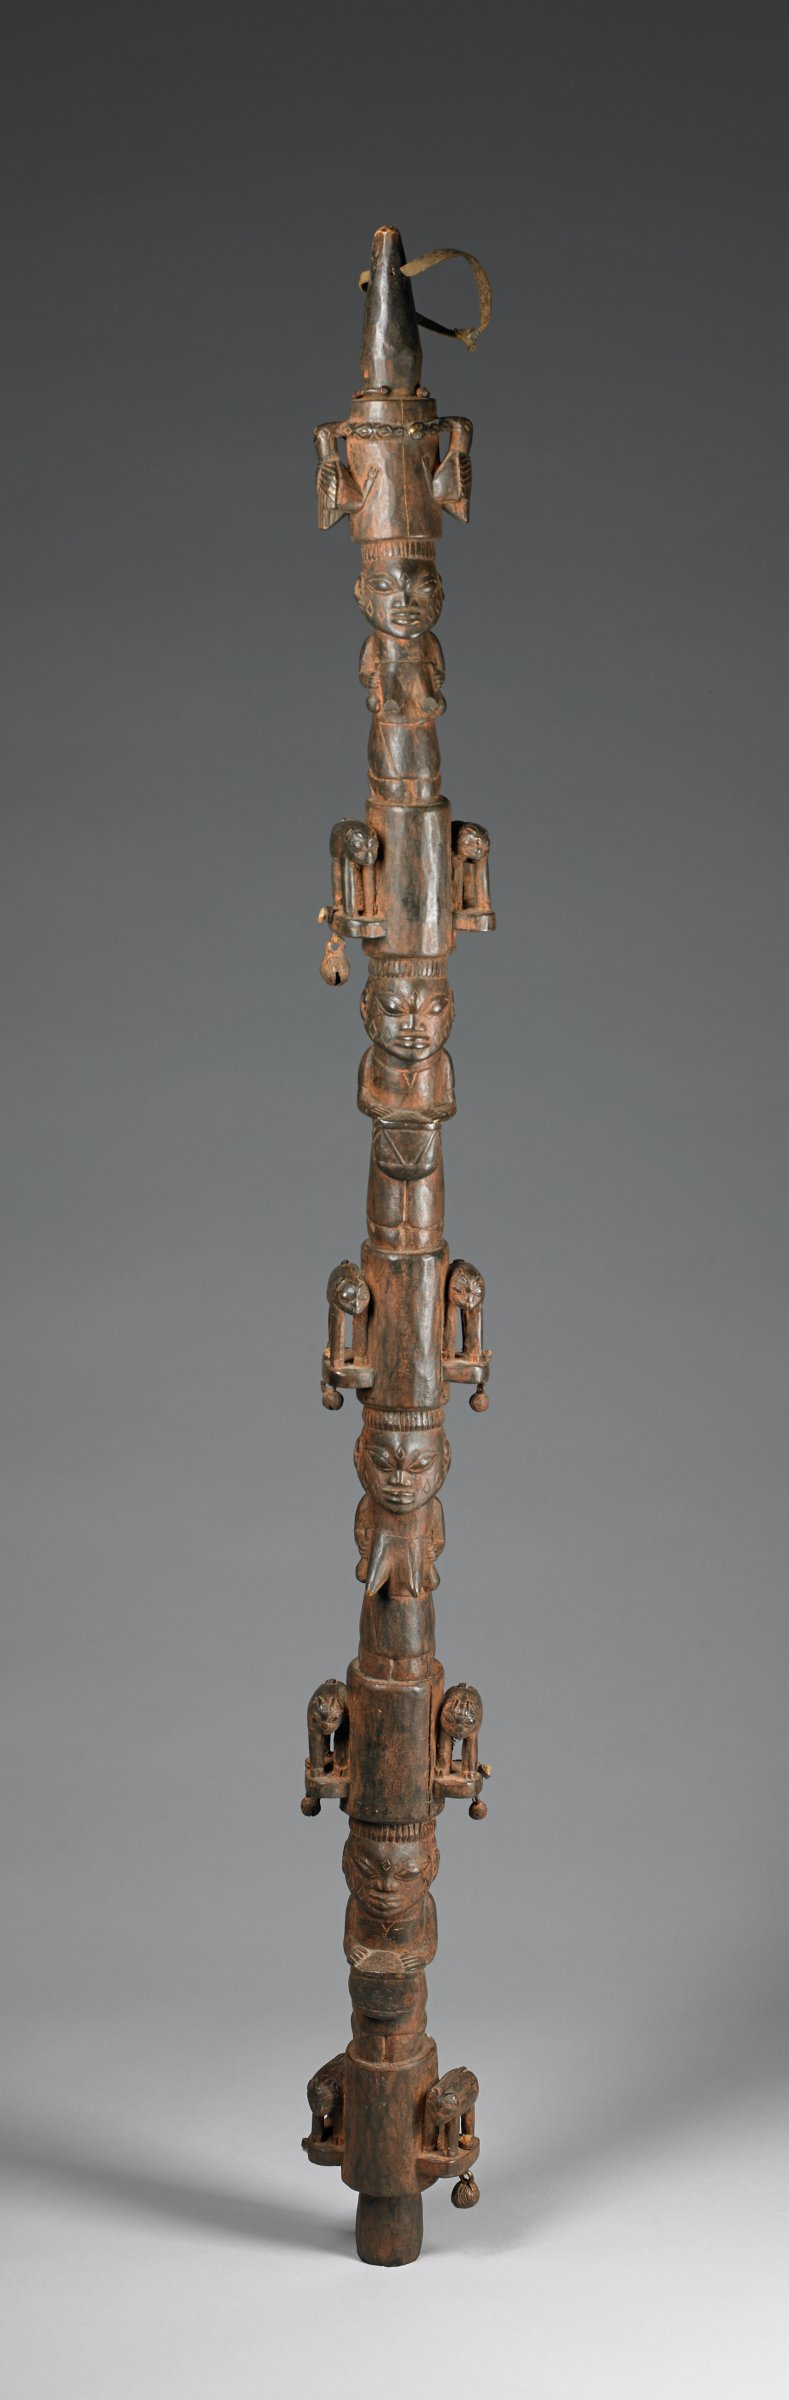 One of four staffs used to deliniate an area around a royal when he appears in public.  Decorated with kneeling female figures with hands on breasts, alternated with knelling male drummers, at top birds and a python, below figures are quadrupeds, possibly goats, symbols of wealth.